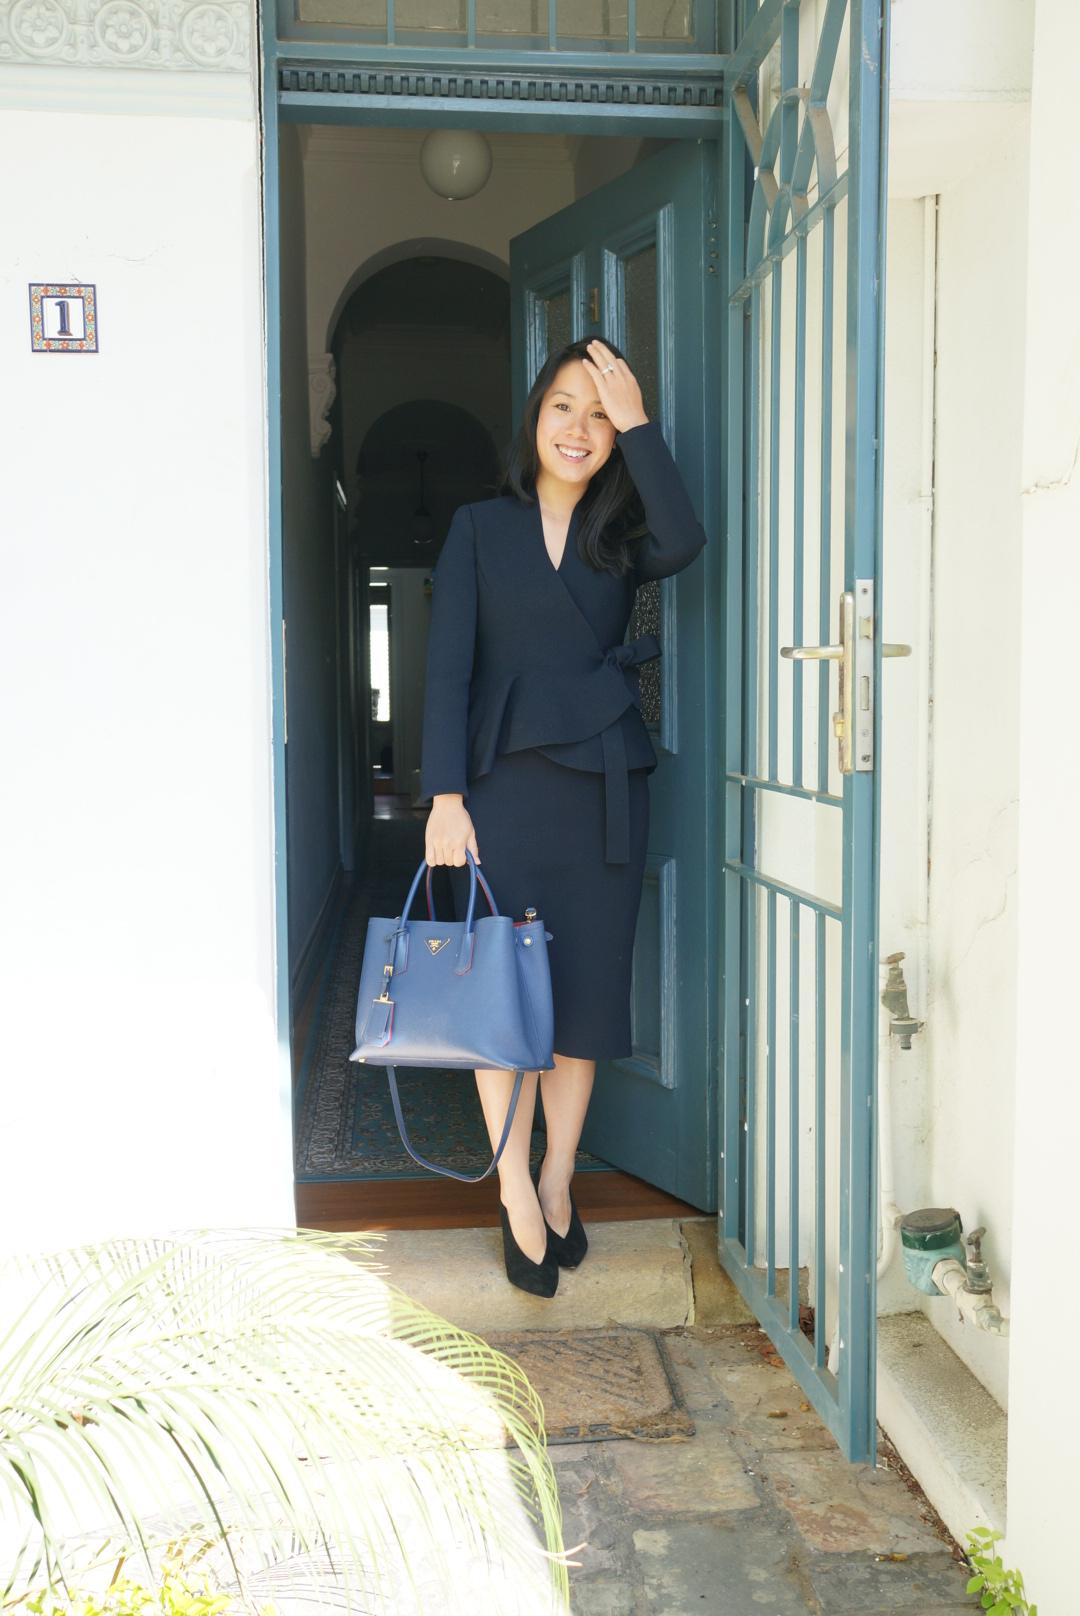 prada saffiano double tote styled in office look in blog post about selling designer bag tips